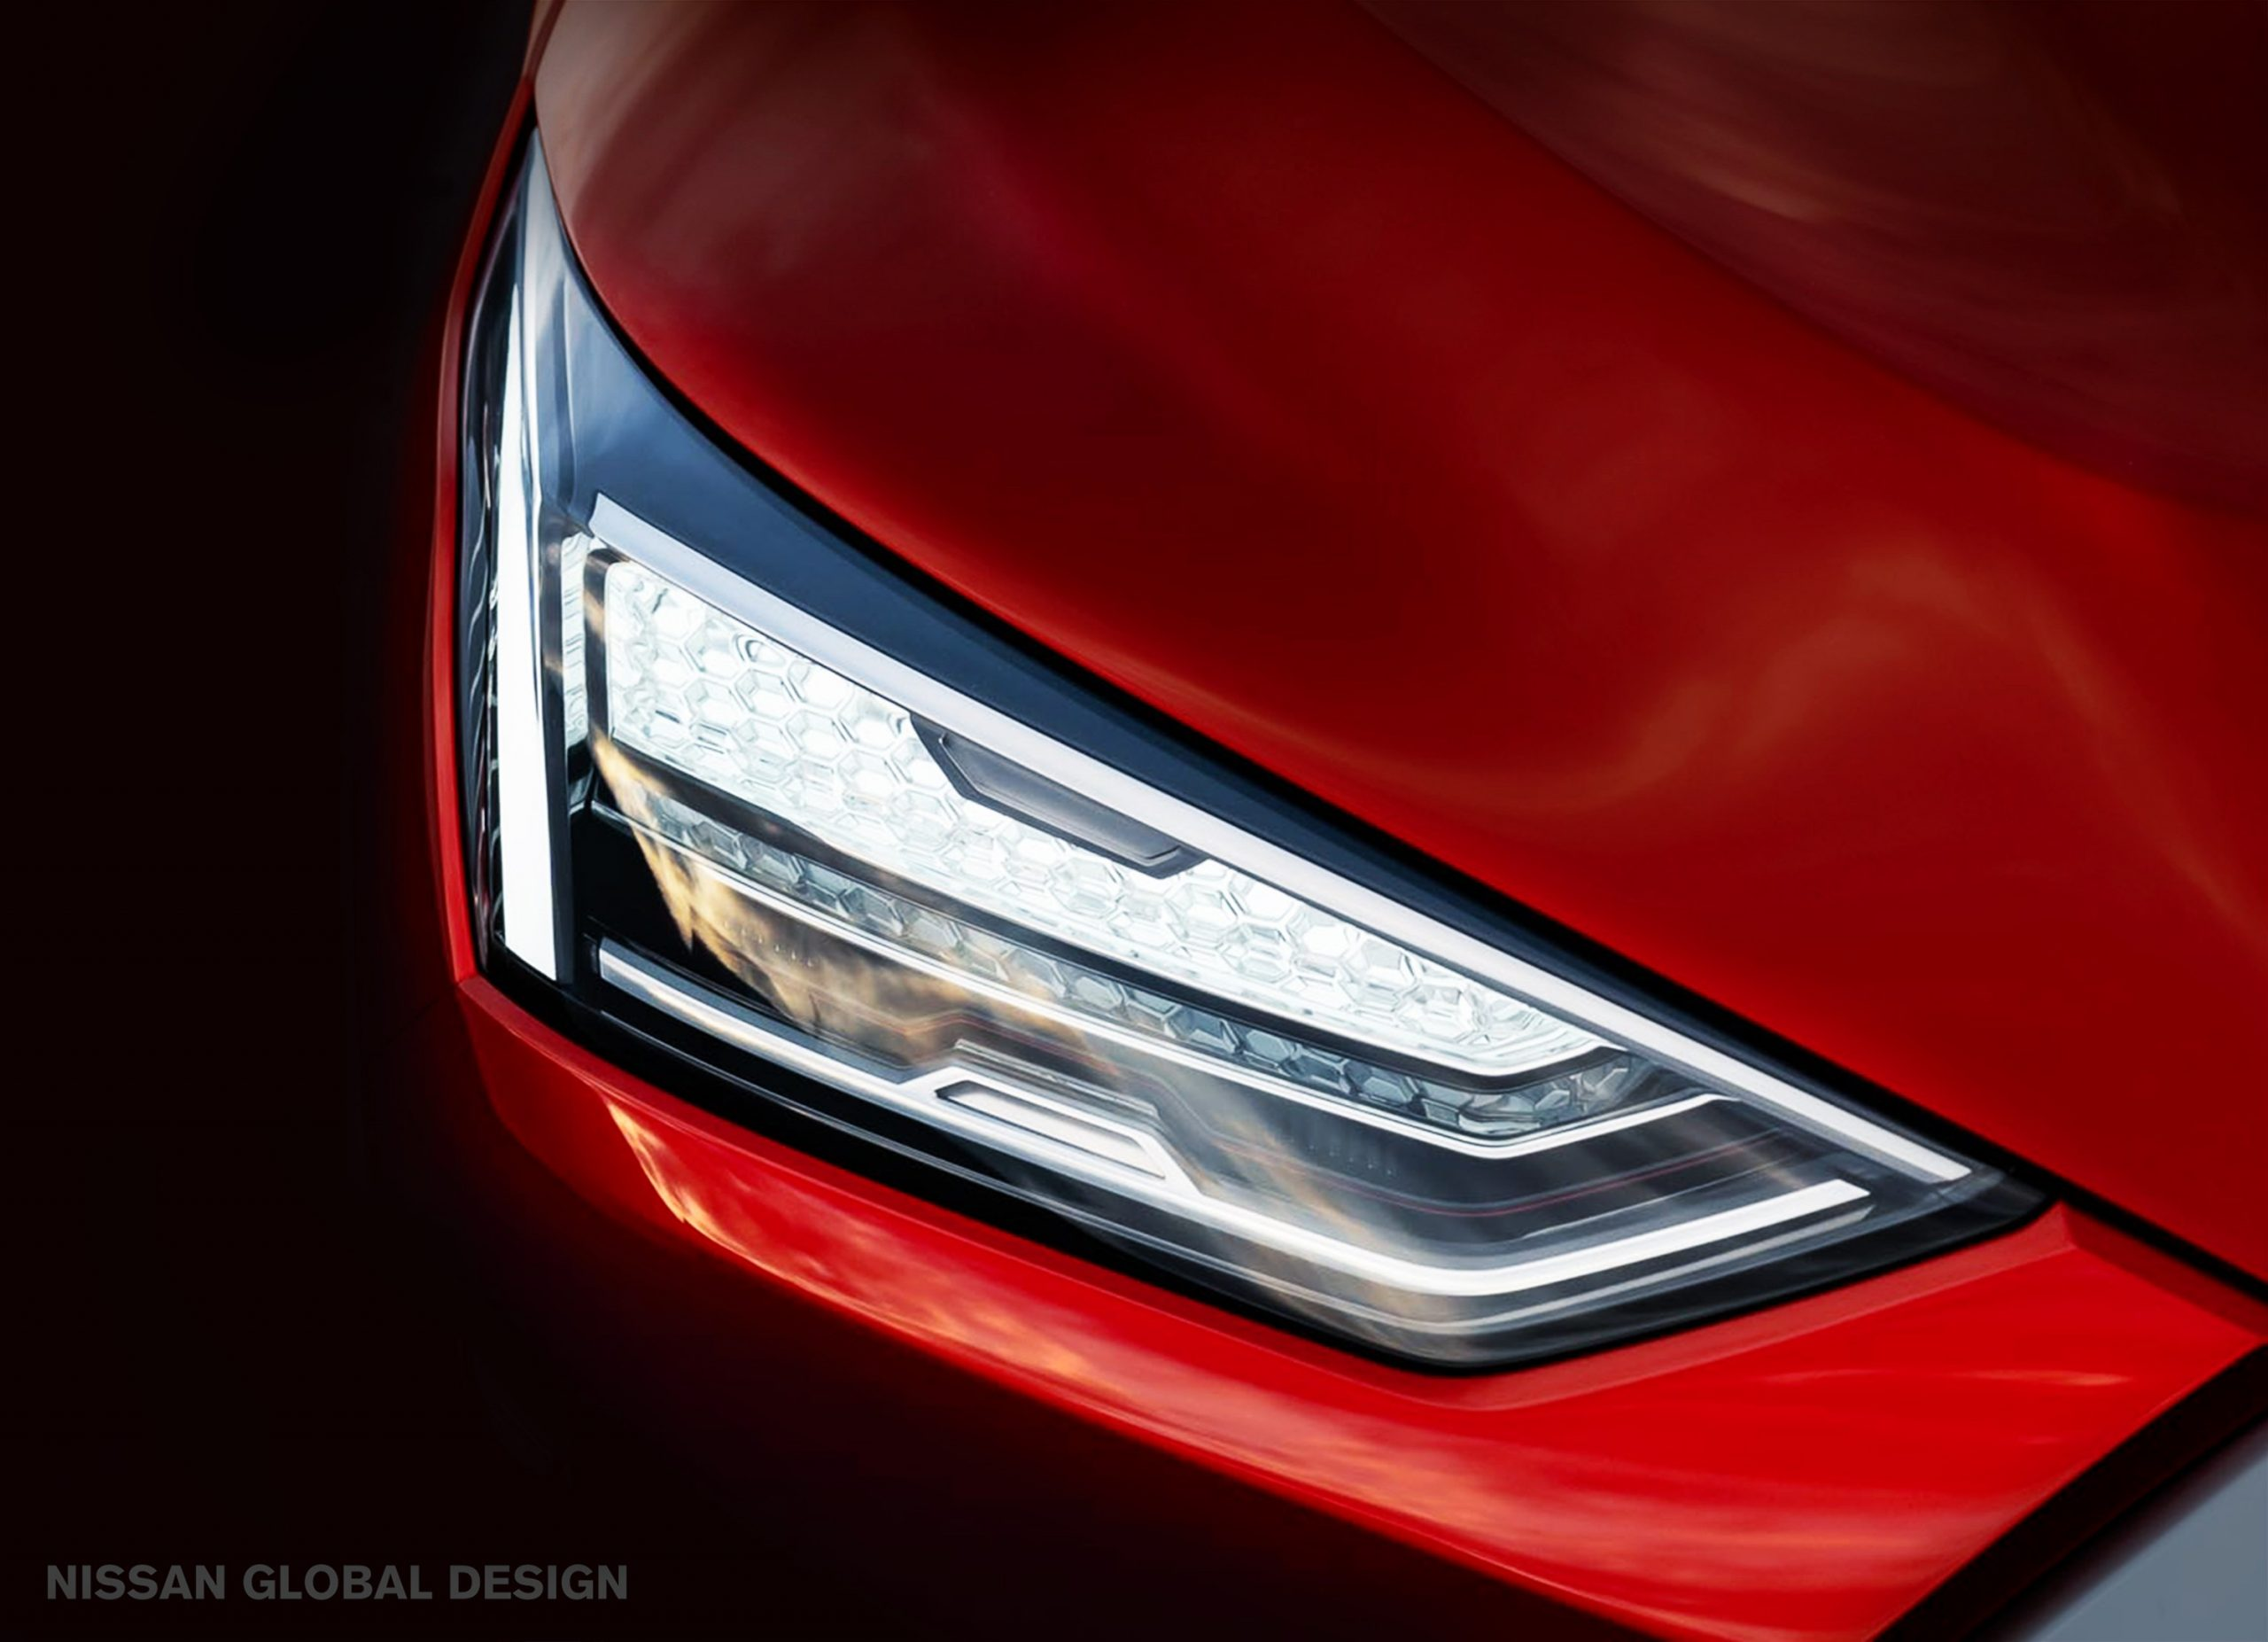 Nissan India Releases Glimpses Much-Awaited Upcoming B-SUV